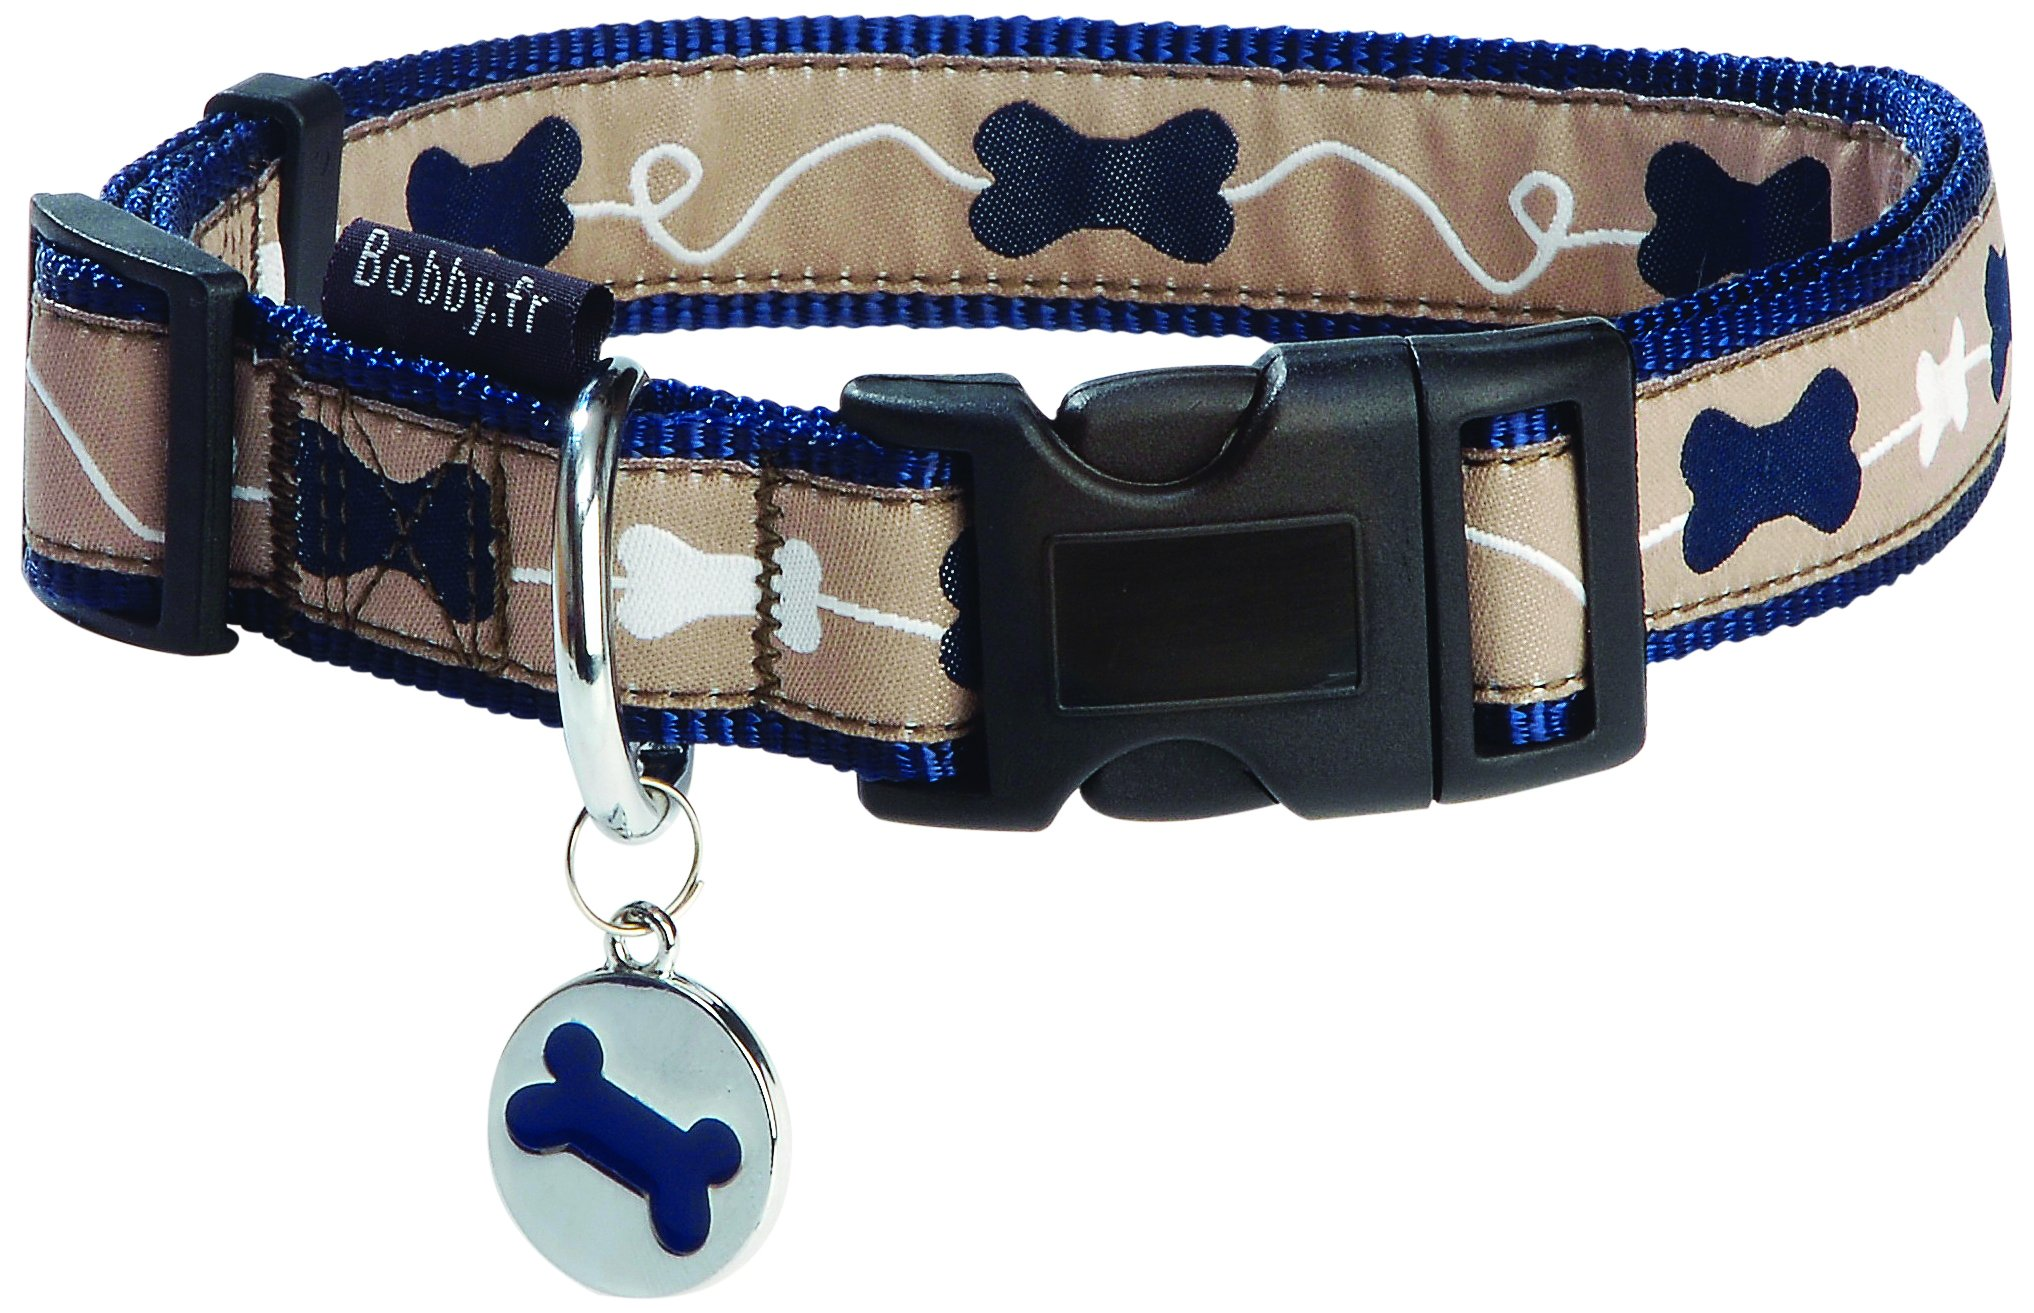 Bobby Kyrielle Dog Collar, Small, Blue